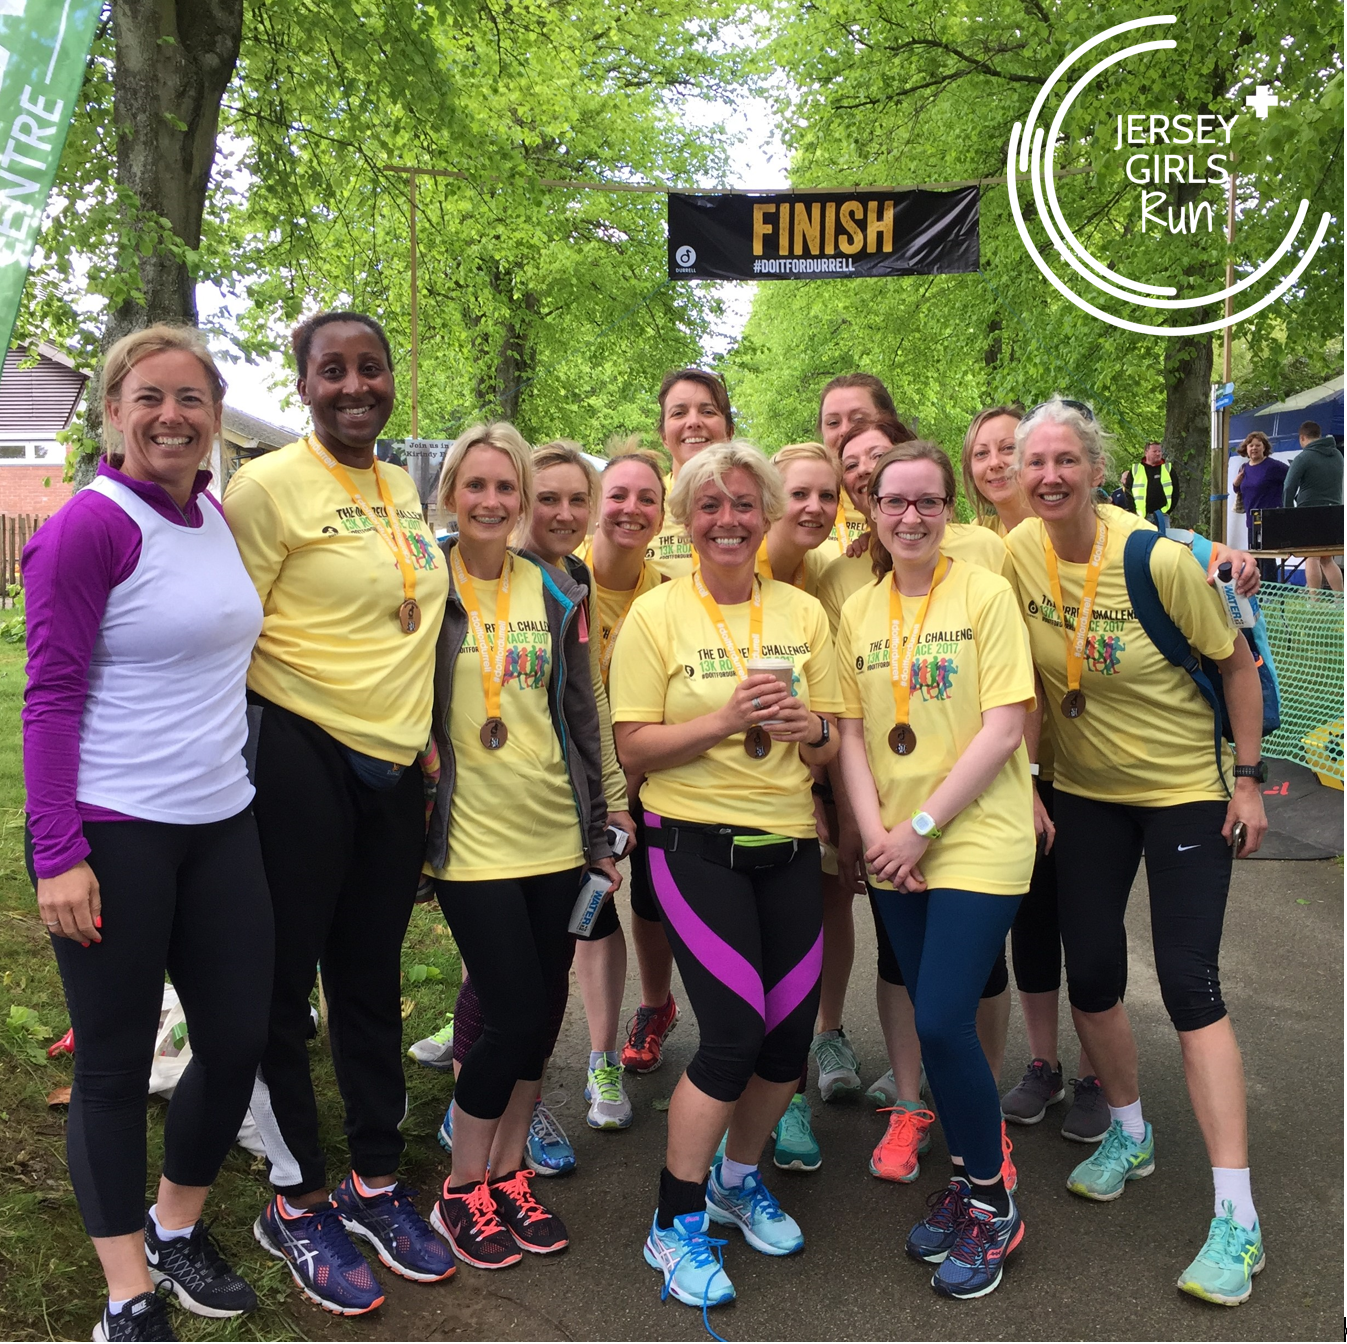 14 MAY 2017 - JERSEY GIRLS take up the Challenge - 22 JERSEY GIRLS took part in the 2017 Durrell Challenge alongside Jersey's own Superman, Henry Cavill. The Durrell Challenge is a 13k road race from West Park to Jersey Zoo which includes a few challenging hills.Many of these women have been through our Couch to 5k program within the past year with two having only just started running at the beginning of 2017. Some of them have also been training on our 5k and Beyond program with the specific goal of completing the The Durrell Challenge.